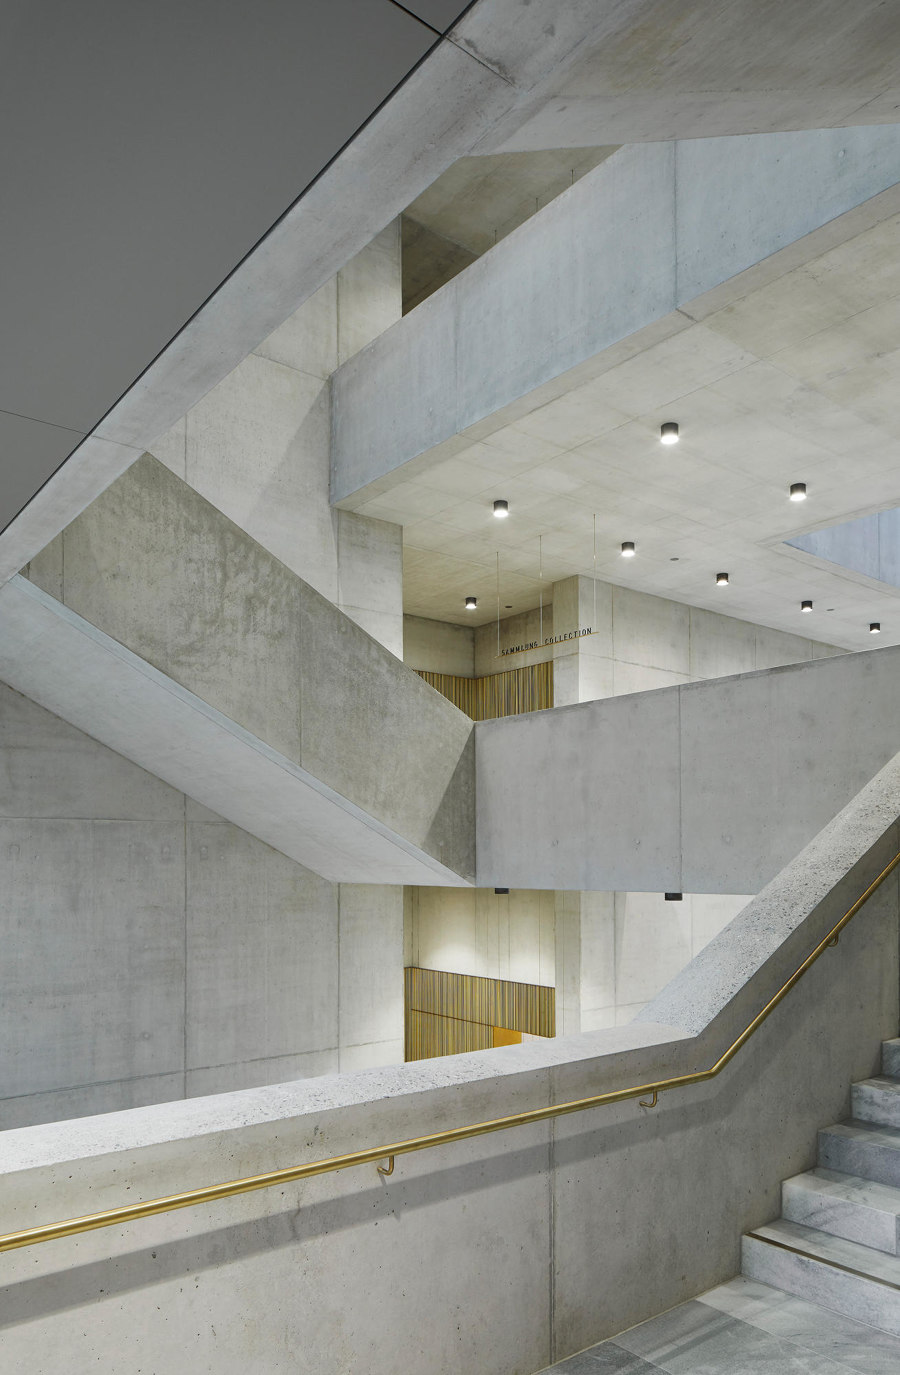 Museum piece: David Chipperfield Architects' new Zurich Kunsthaus extension | News